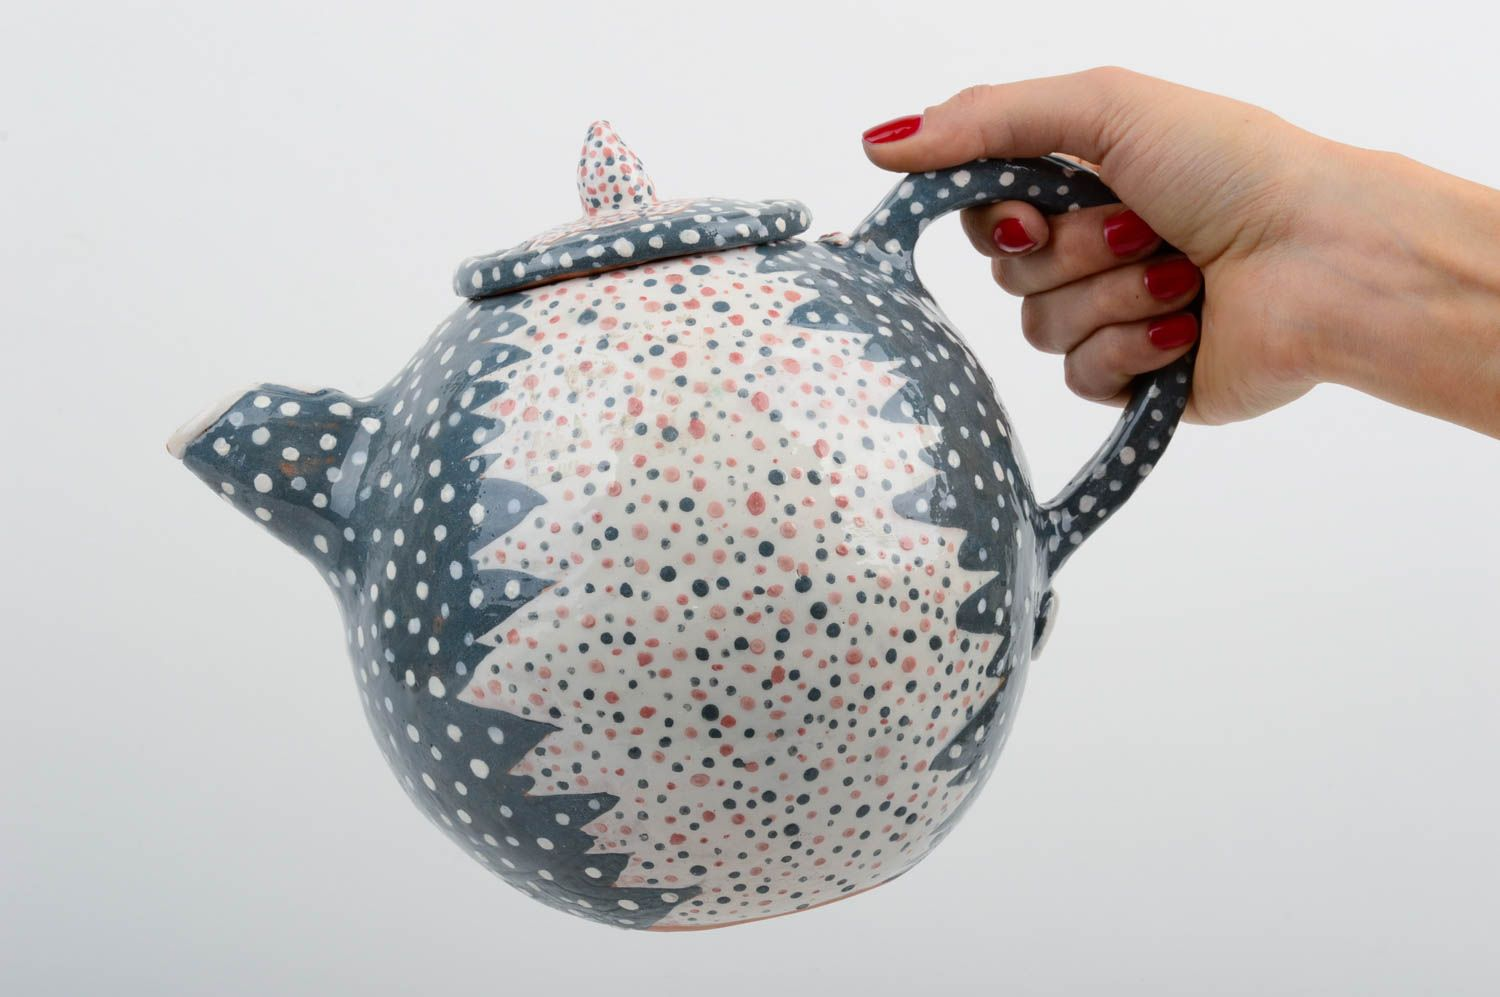 Handmade ceramic ware stylish clay teapot unusual kitchenware art pottery photo 2